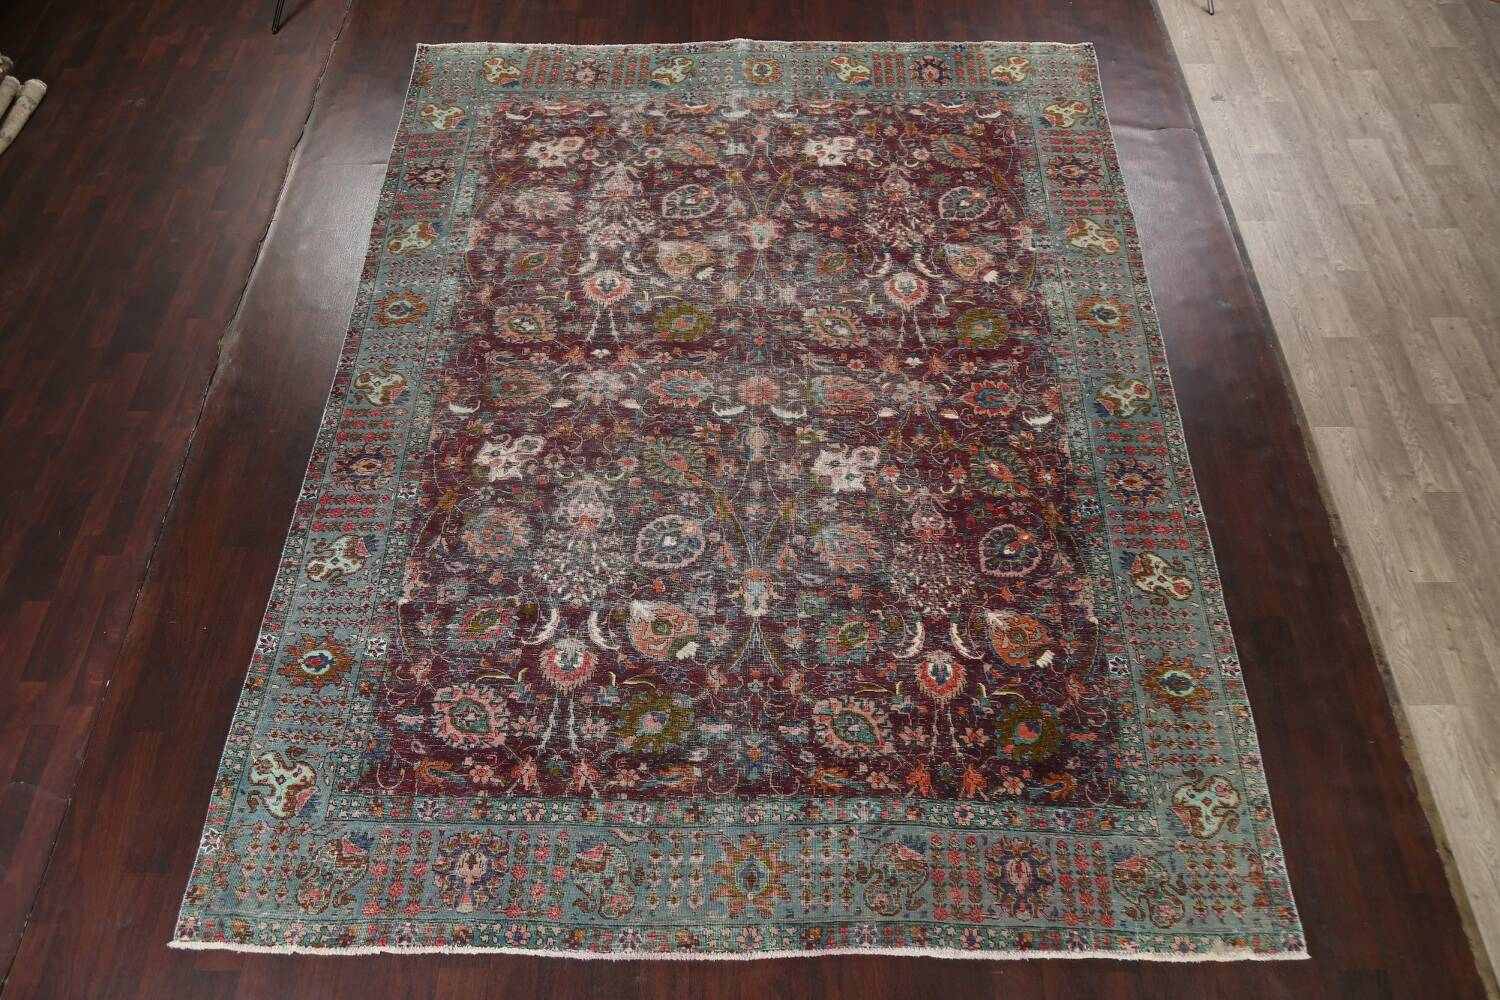 Antique Over-Dyed Tabriz Persian Area Rug 9x12 image 2